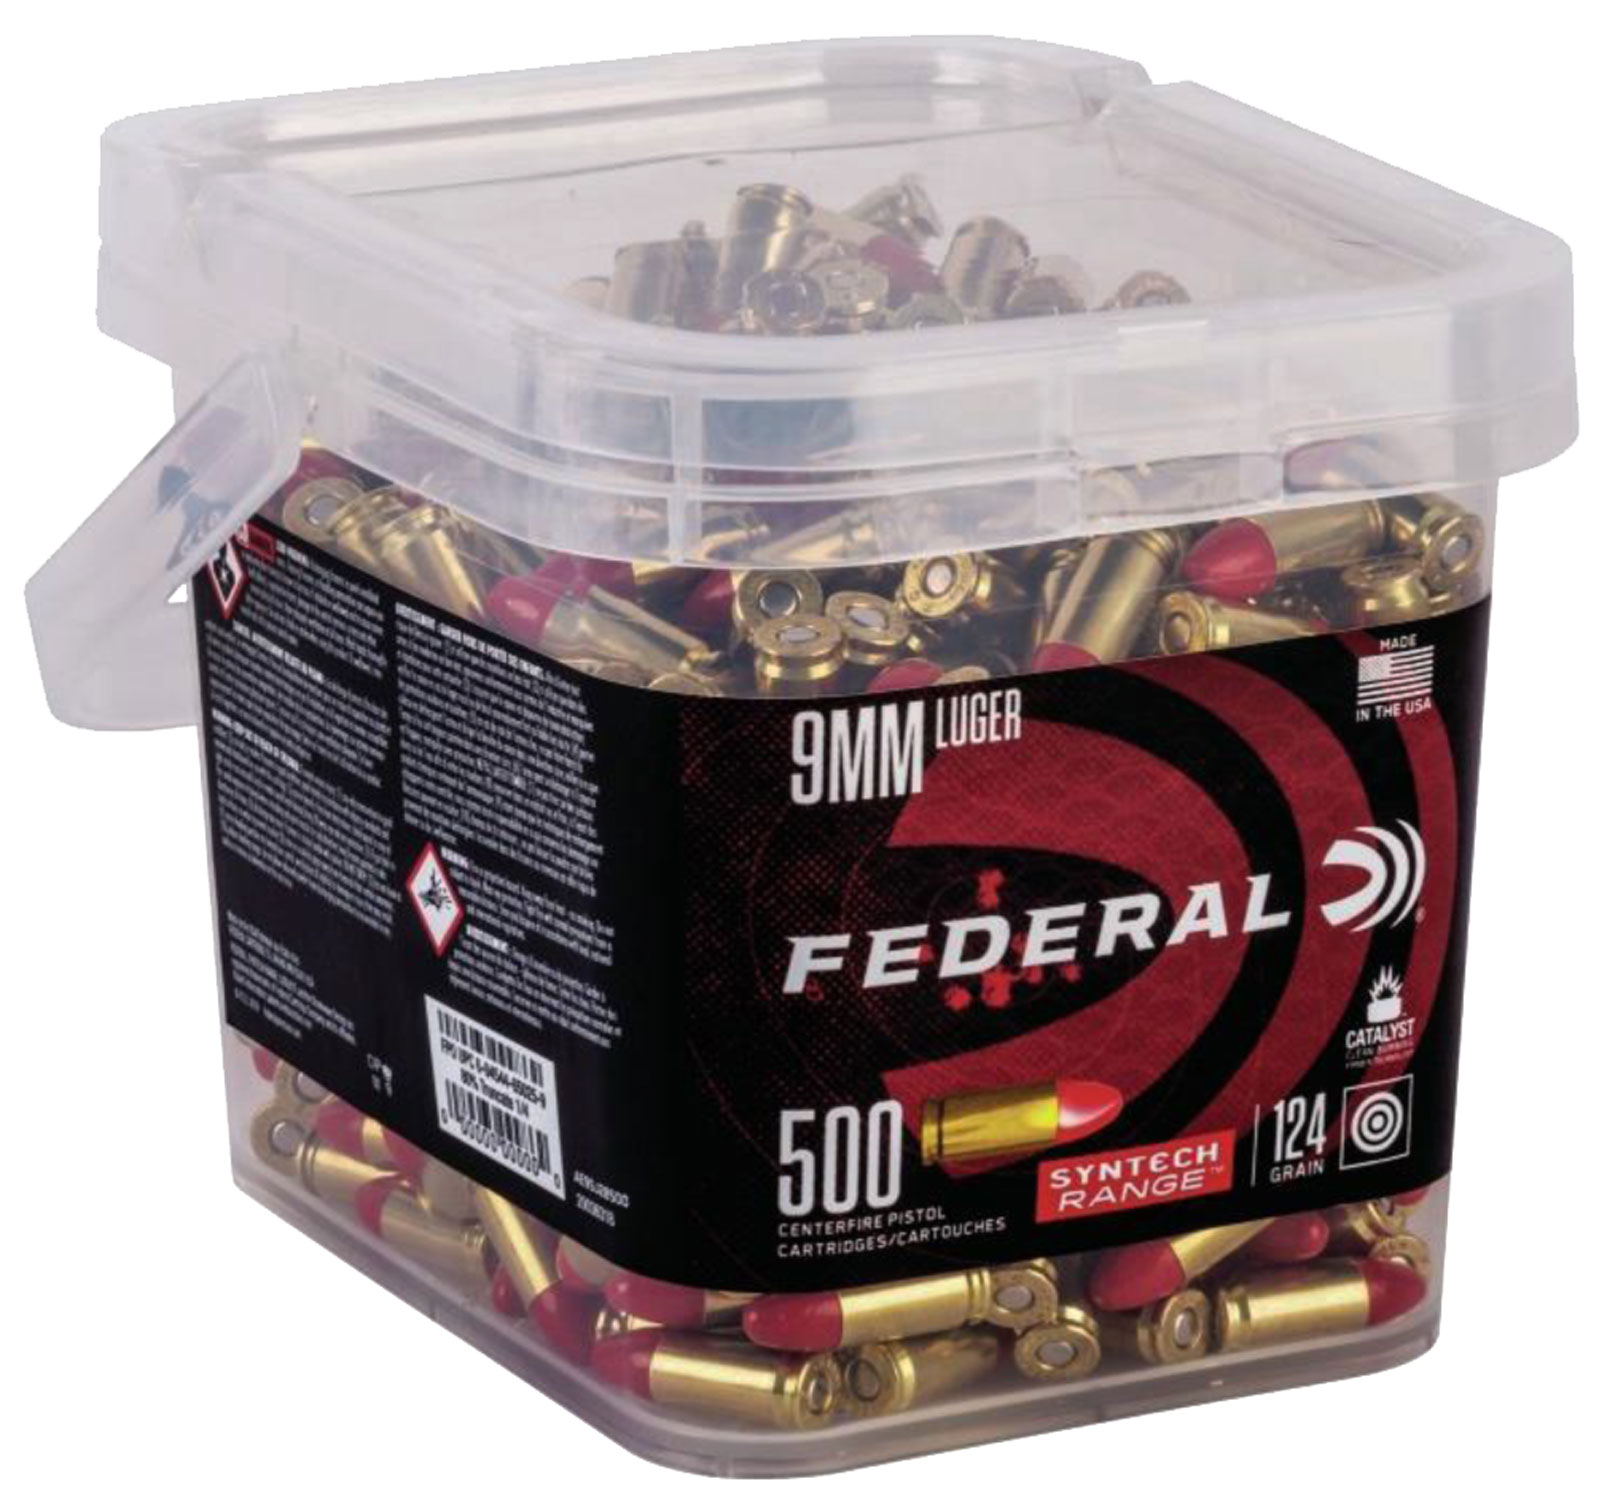 Federal AE9SJ2B500 American Eagle Syntech 9mm Luger 124 GR Total Syntech Jacket Round Nose (TSJRN) 500 Bx/ 2 Cs